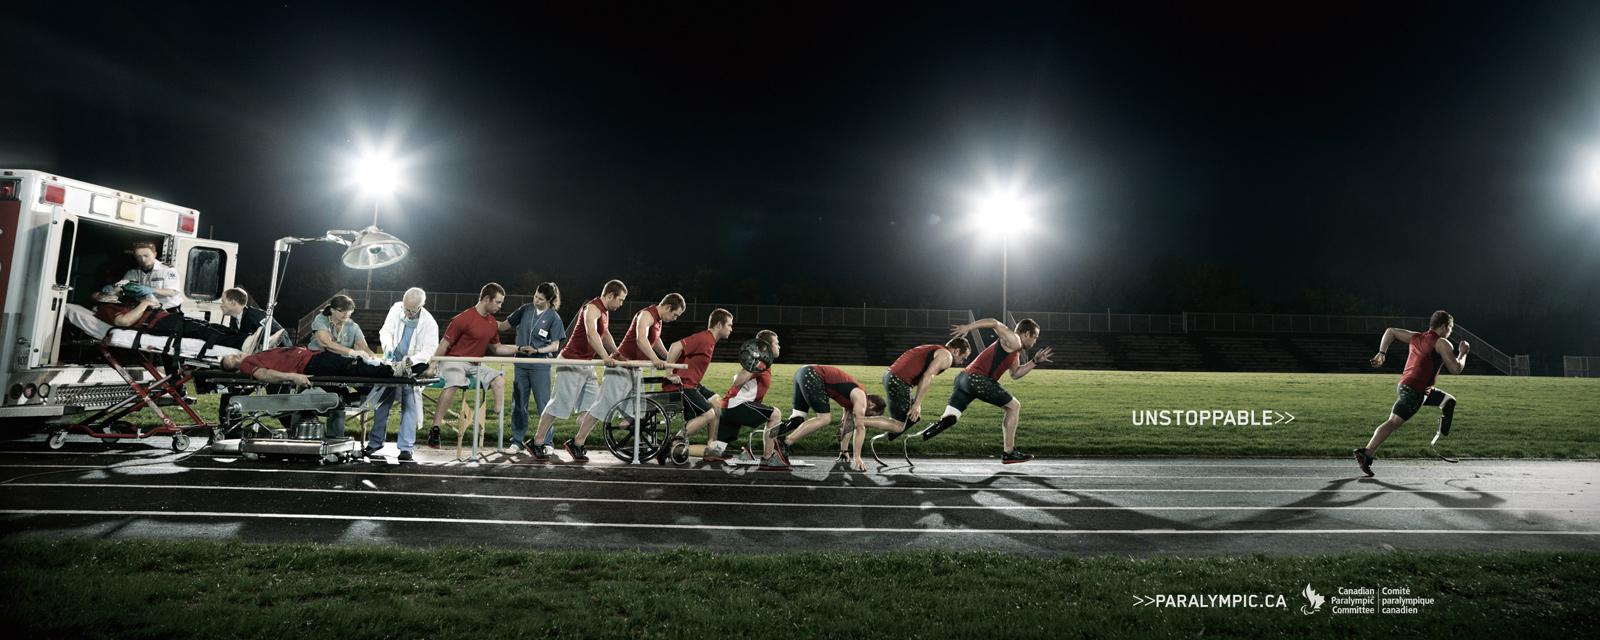 Canadian Paralympics Committee Print Ad -  Running (Unstoppable)